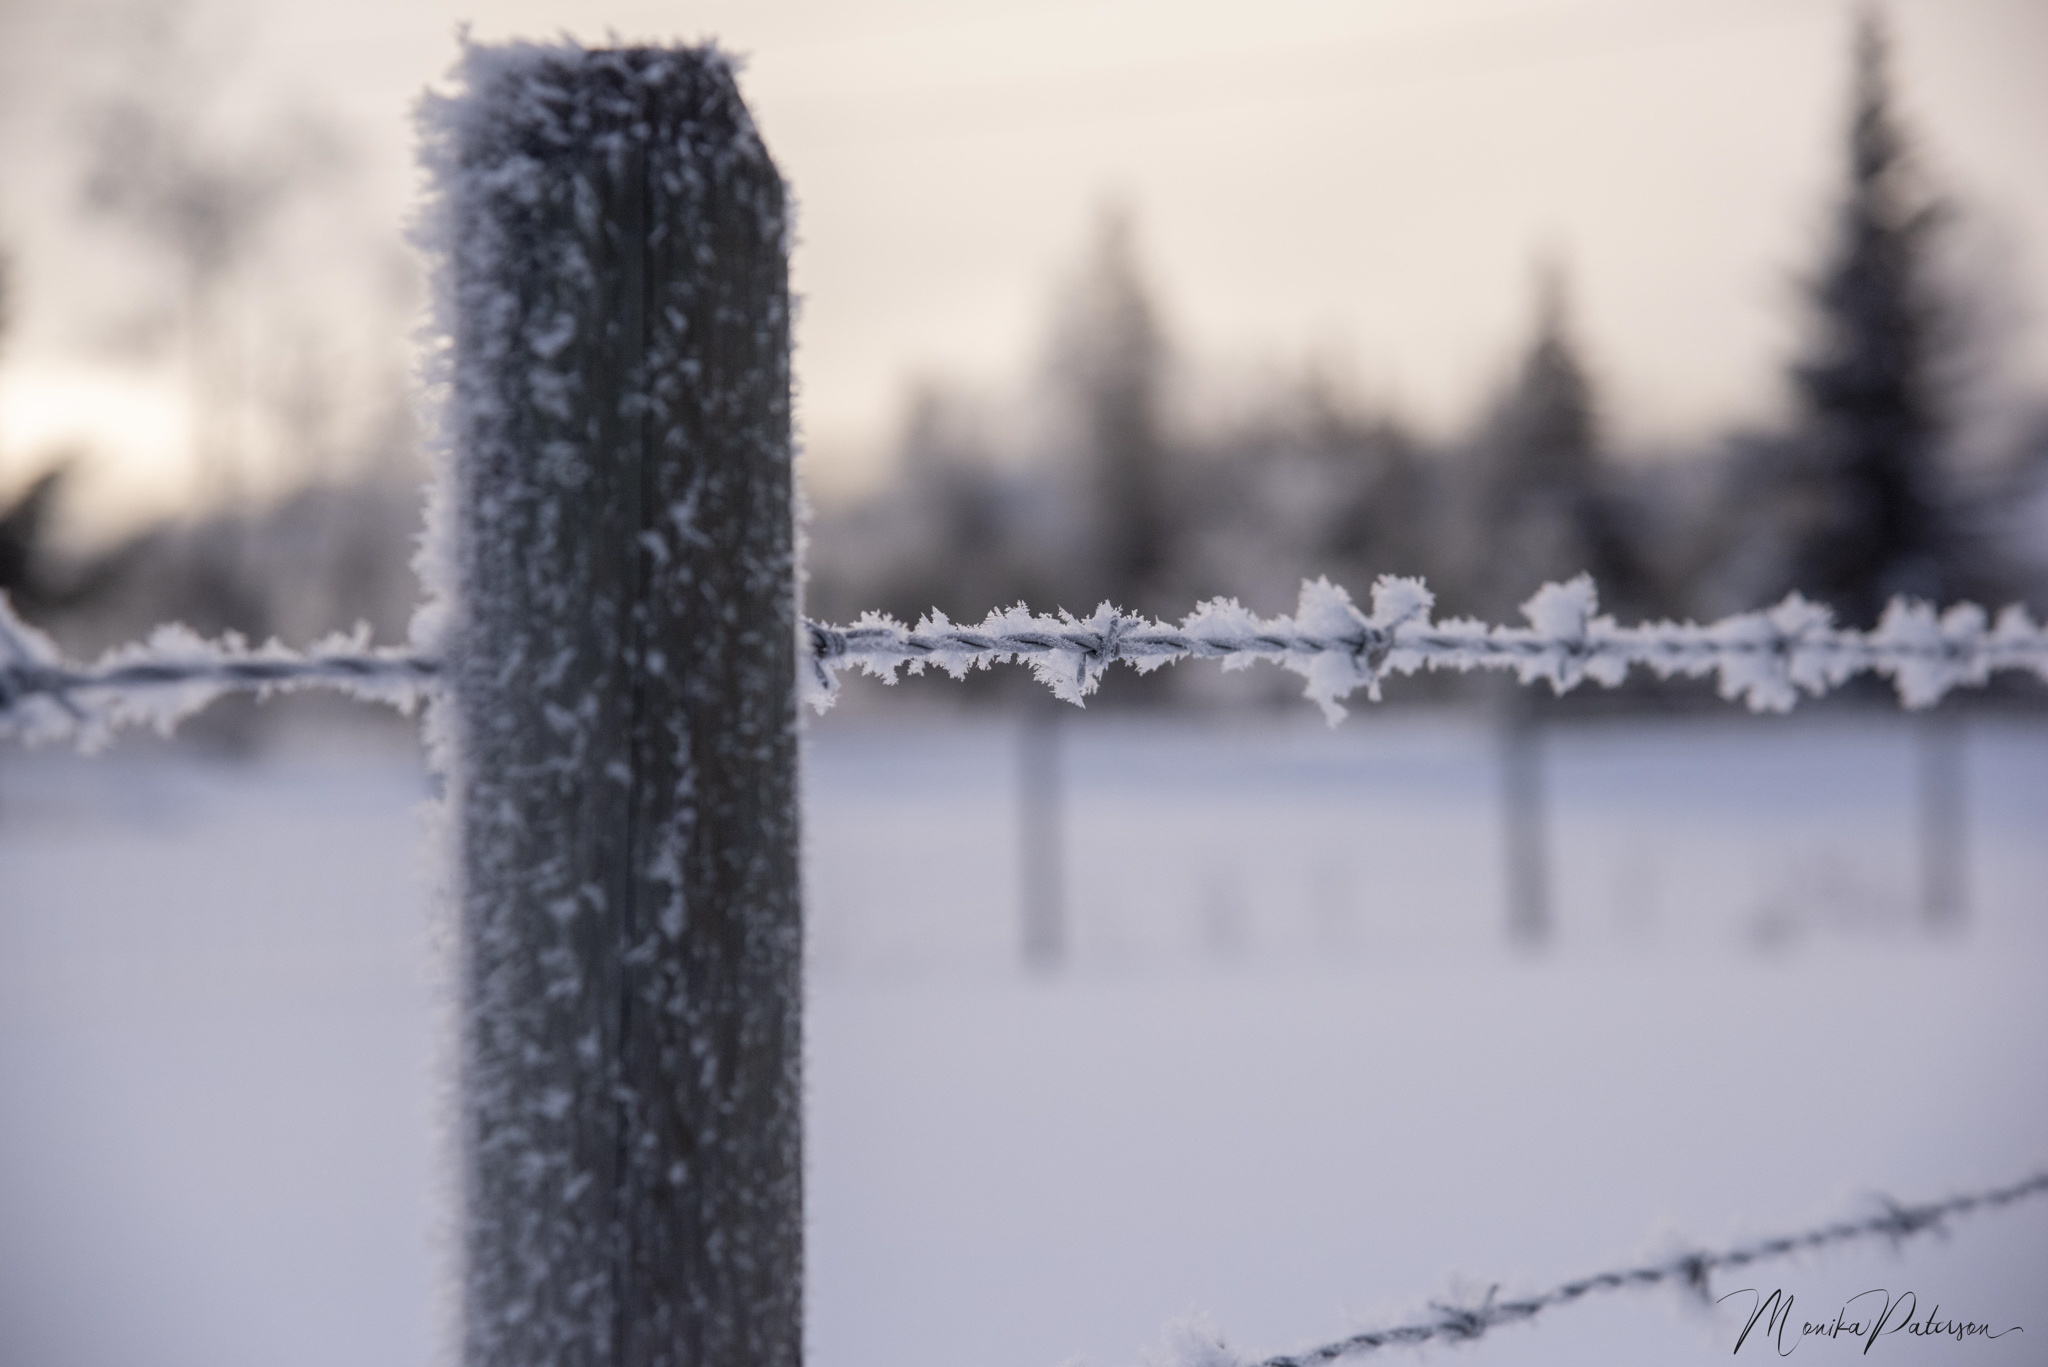 Hoarfrost on Barbed Wire - Monika Paterson